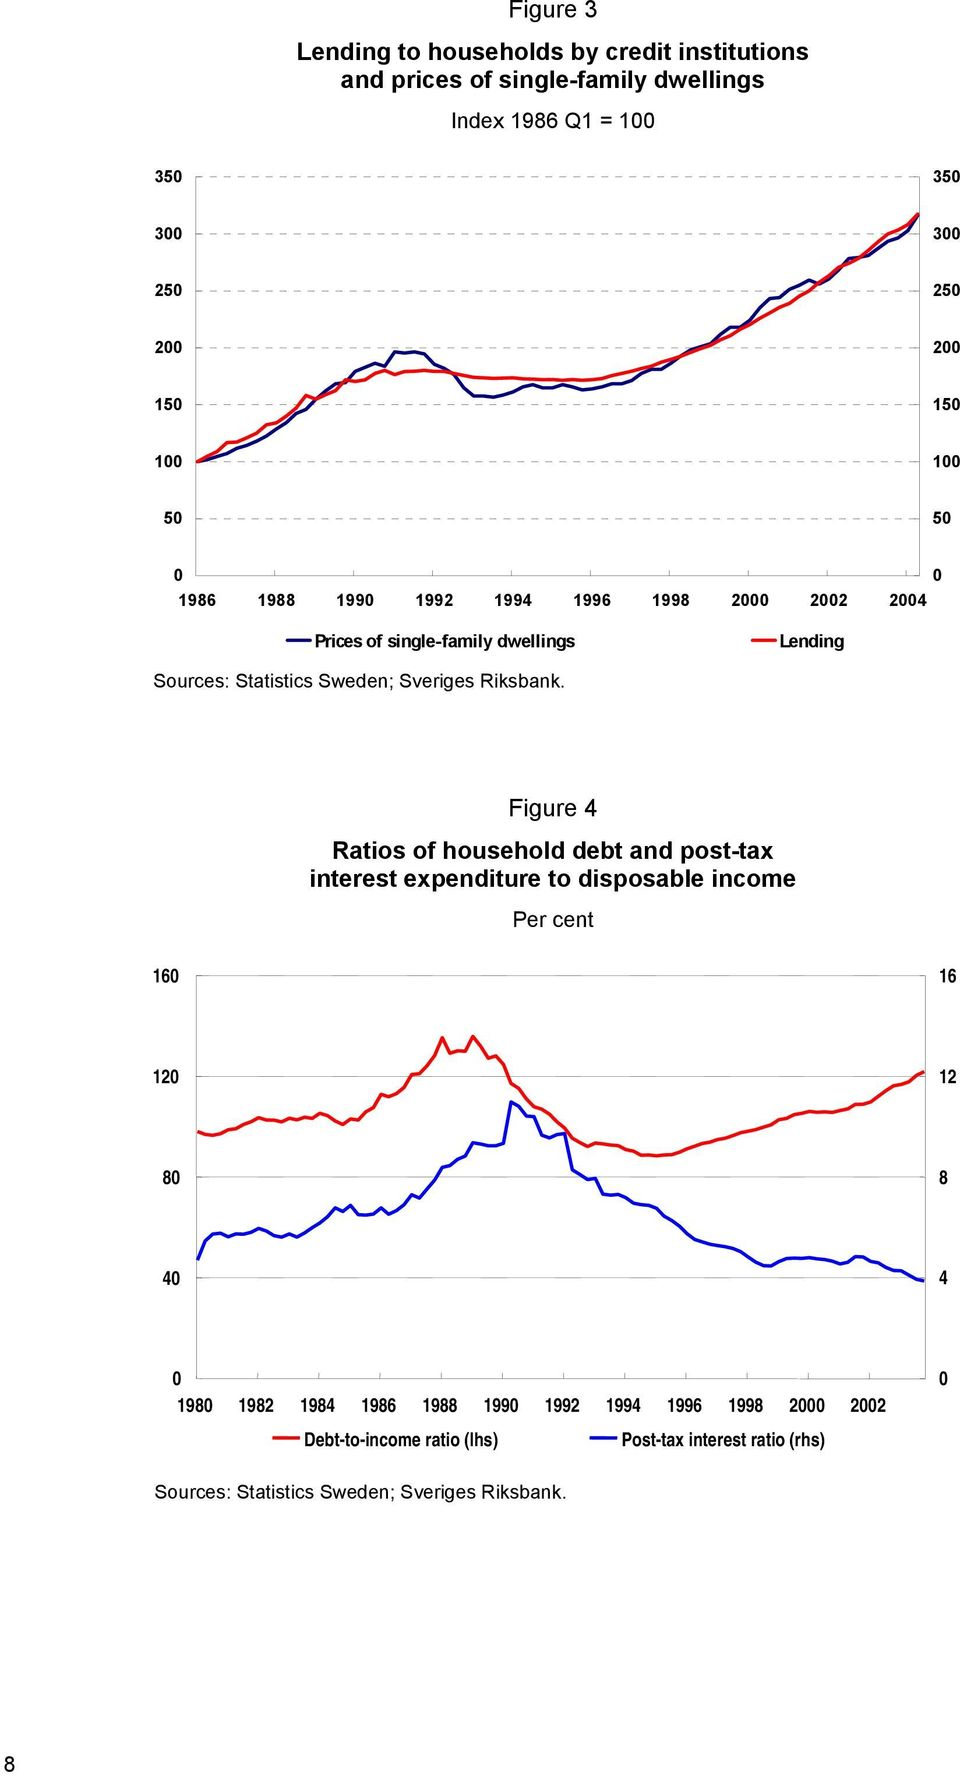 Figure 4 Ratios of household debt and post-tax interest expenditure to disposable income Per cent 16 16 12 12 8 8 4 4 198 1982 1984 1986